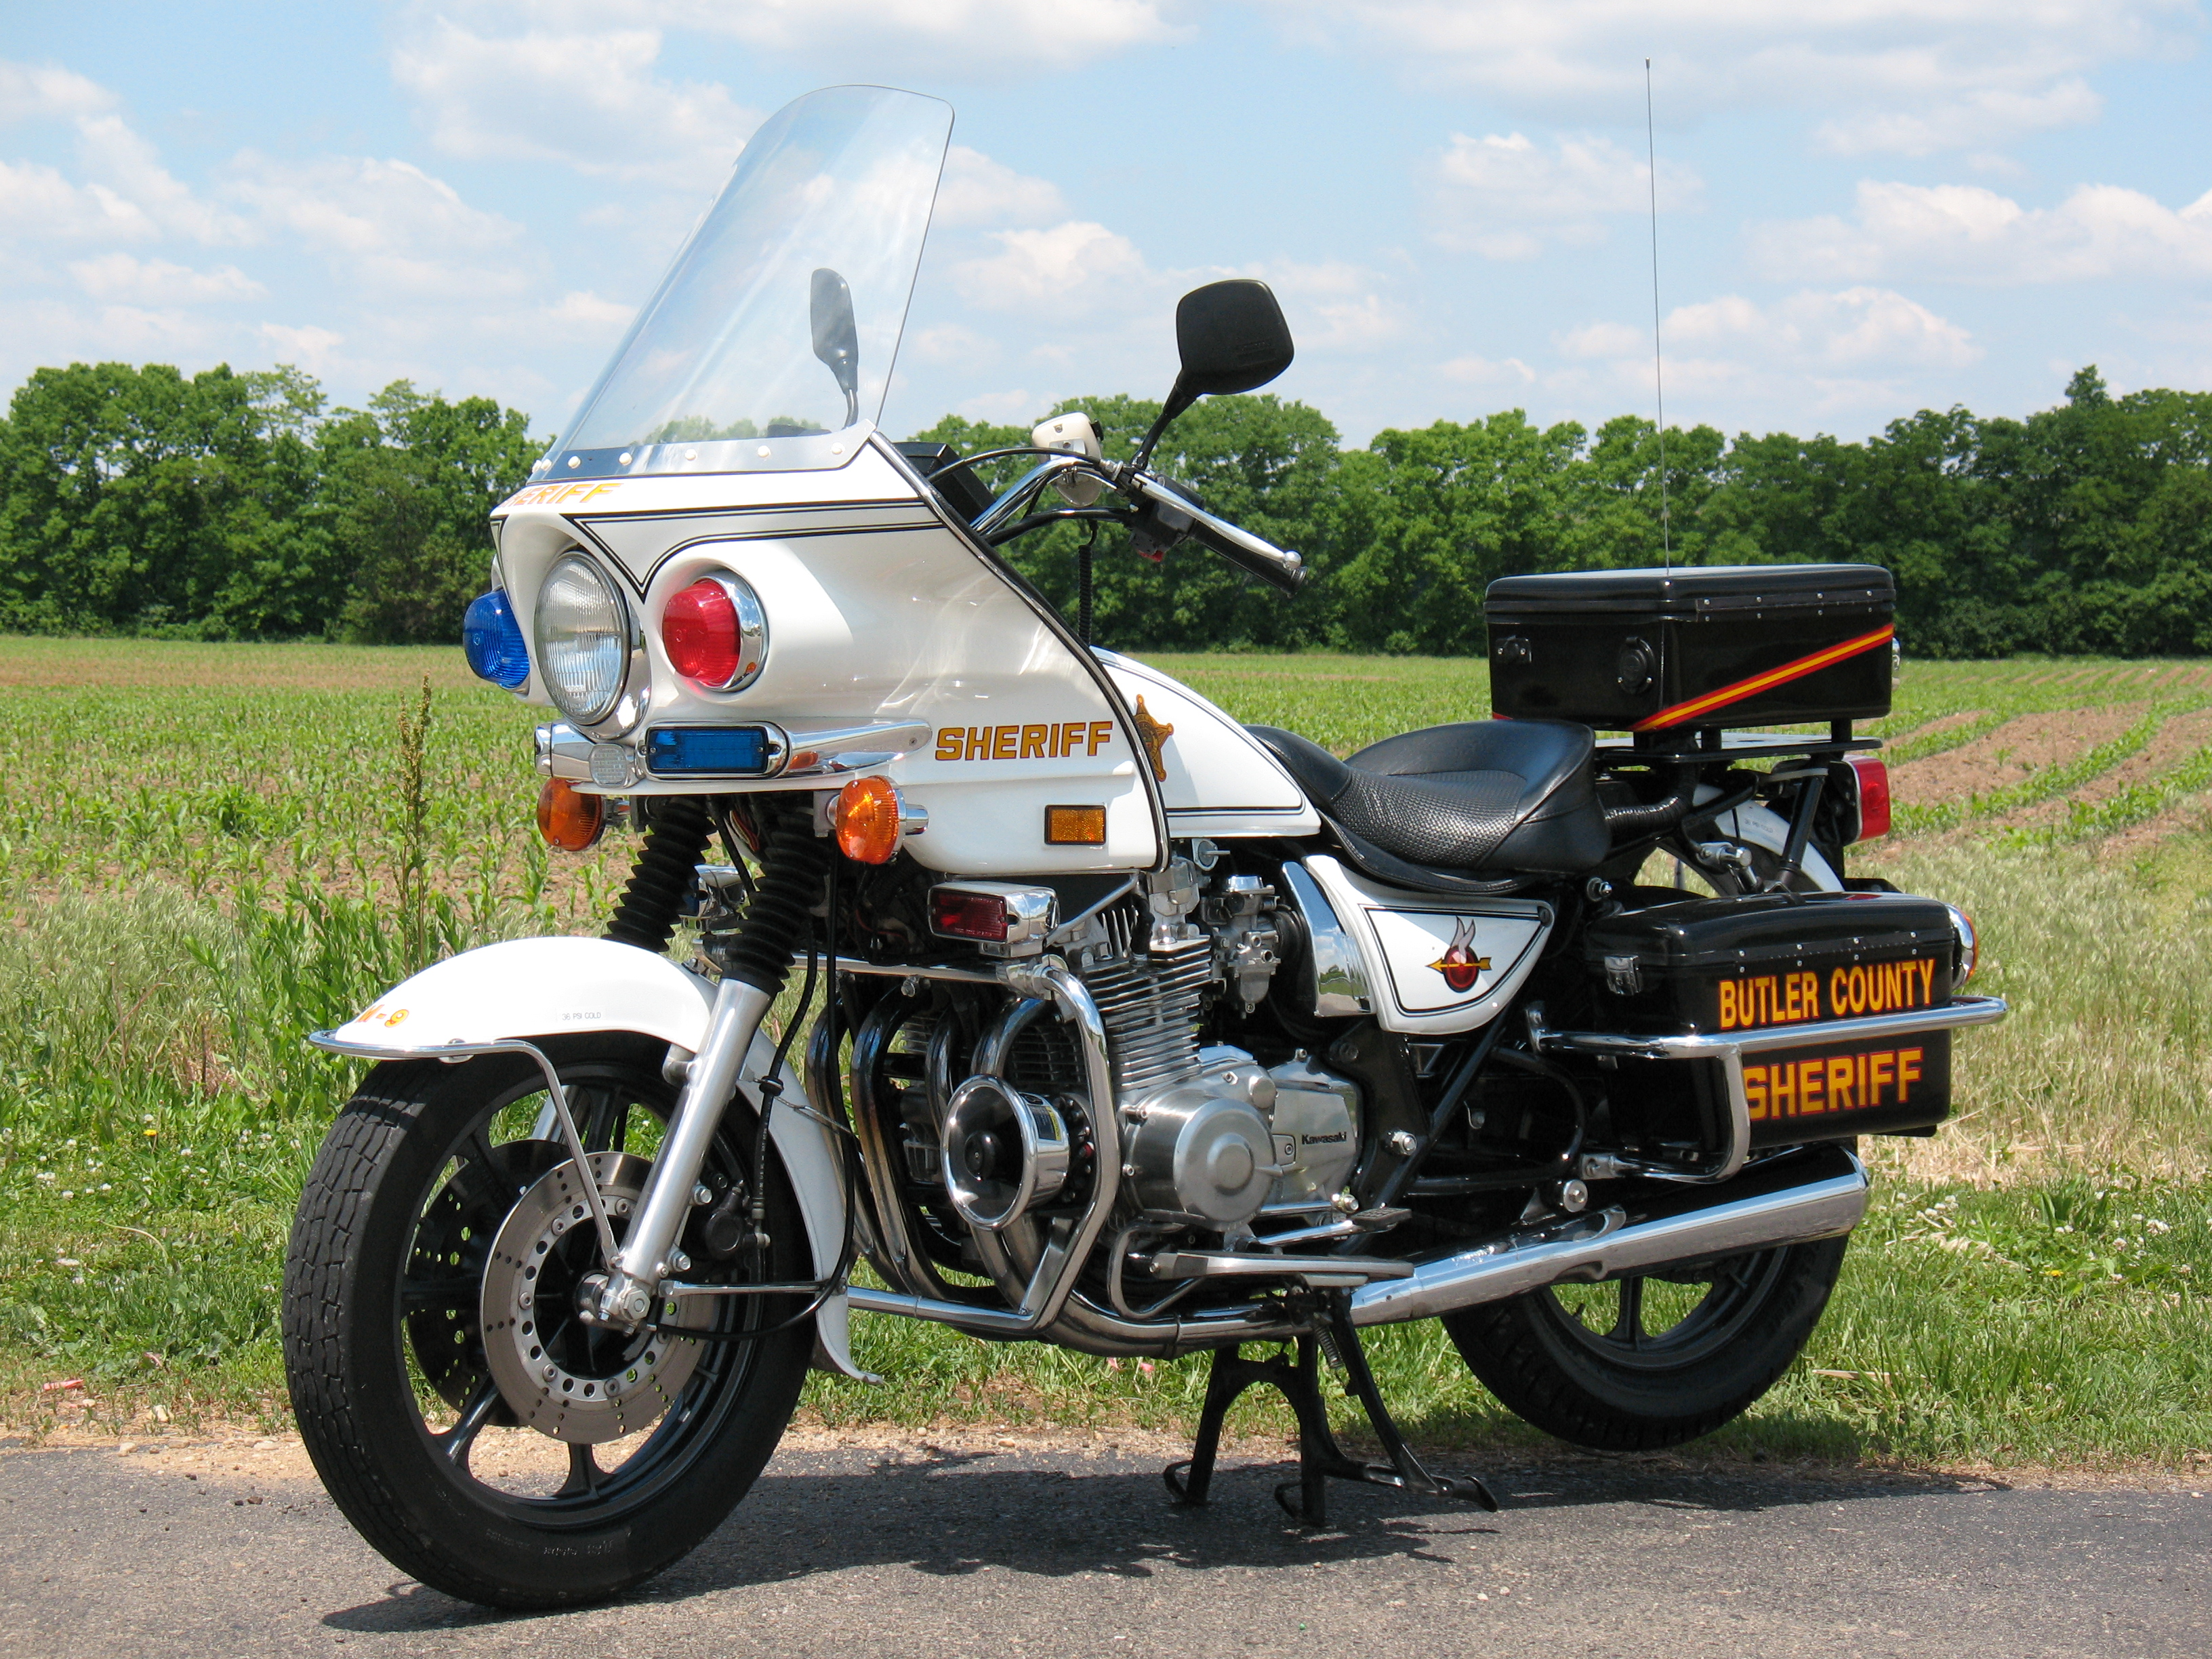 Kawasaki Z1000 Police Motorcycle For Sale